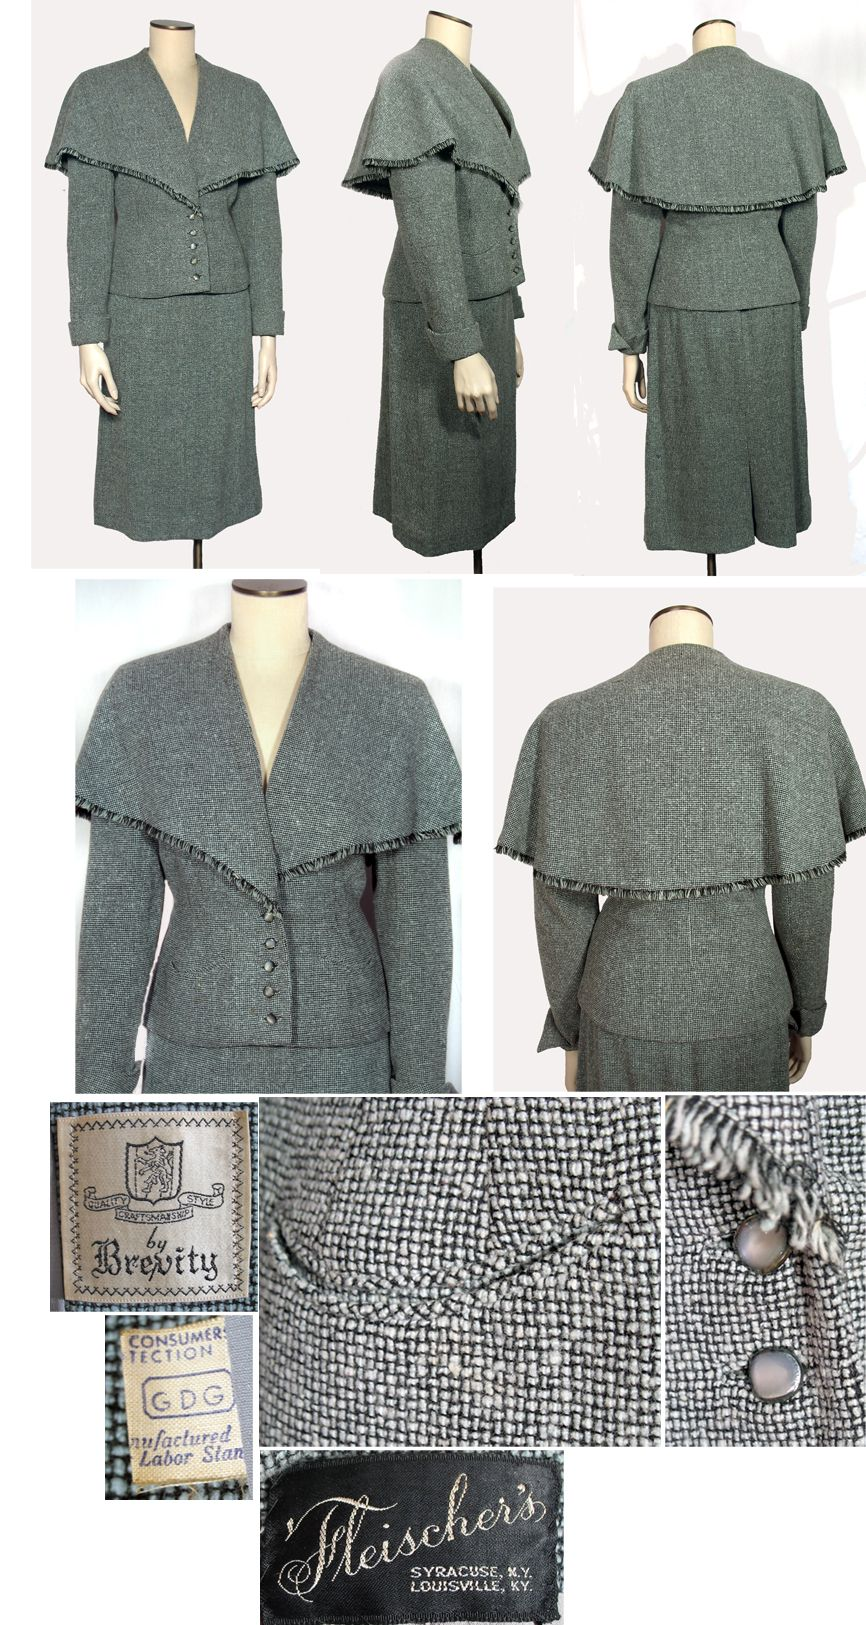 1940s Soft Blue and Black Tweed Wool Vintage Suit with Cape Collar. This is a beautifully constructed and designed vintage suit that would flatter any figure. I love the cape collar!